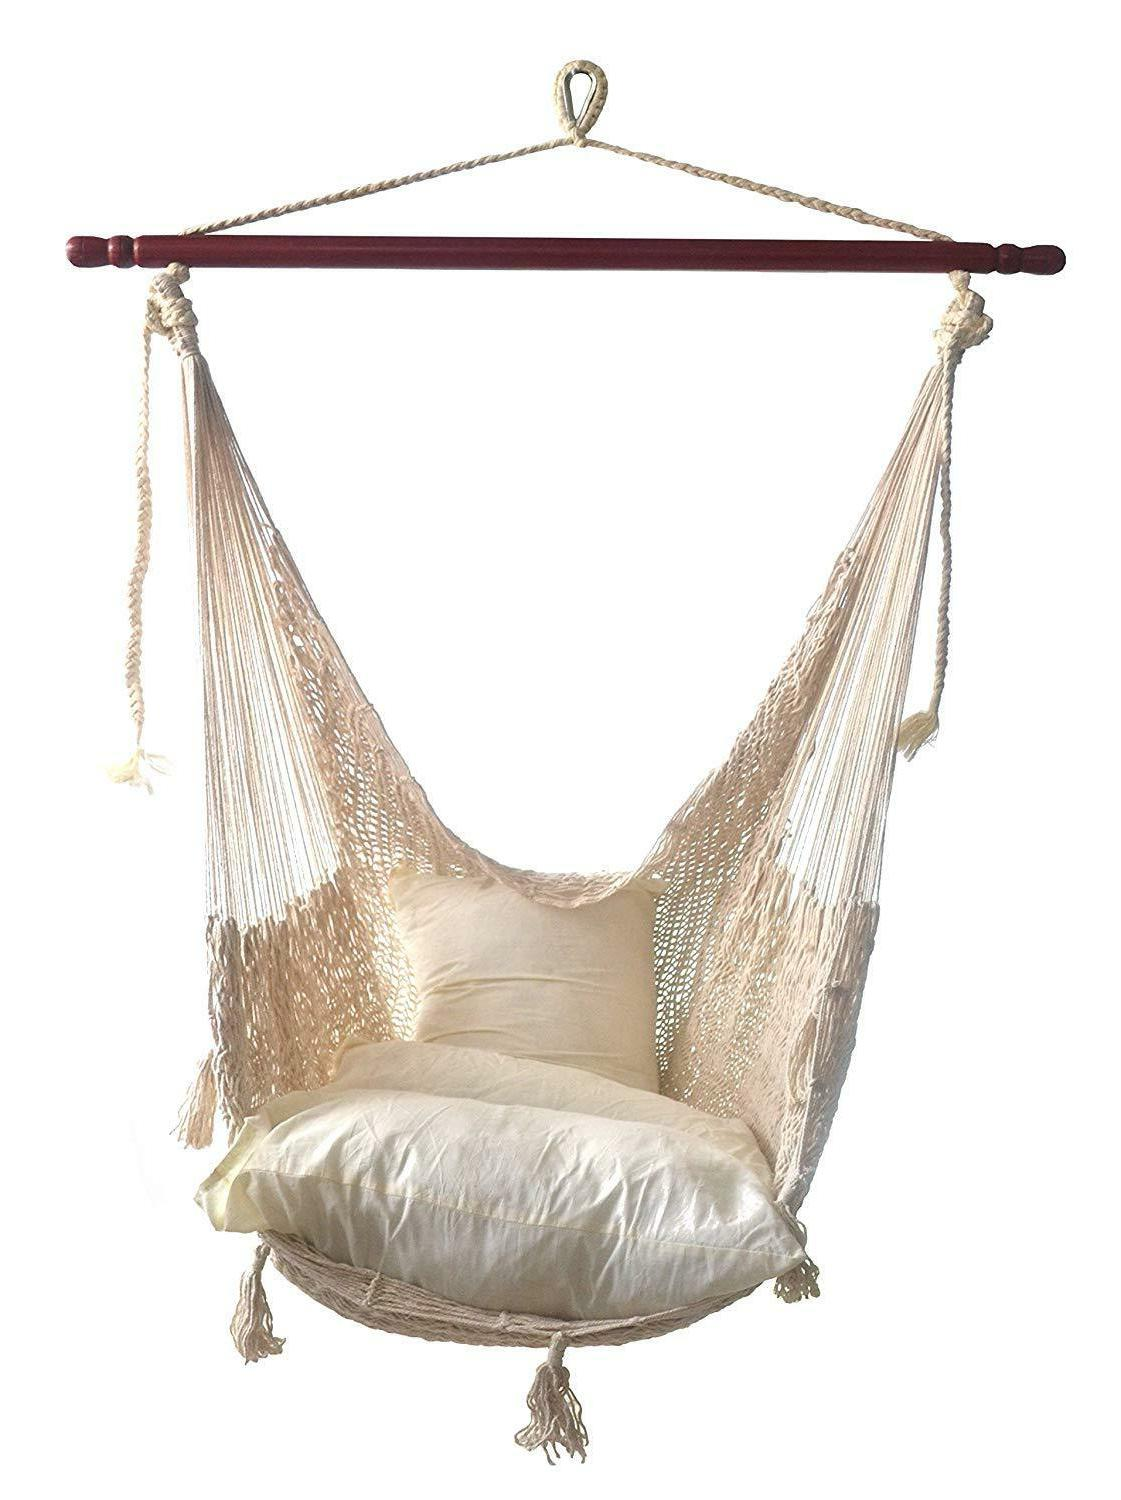 chair hammock deluxe natural